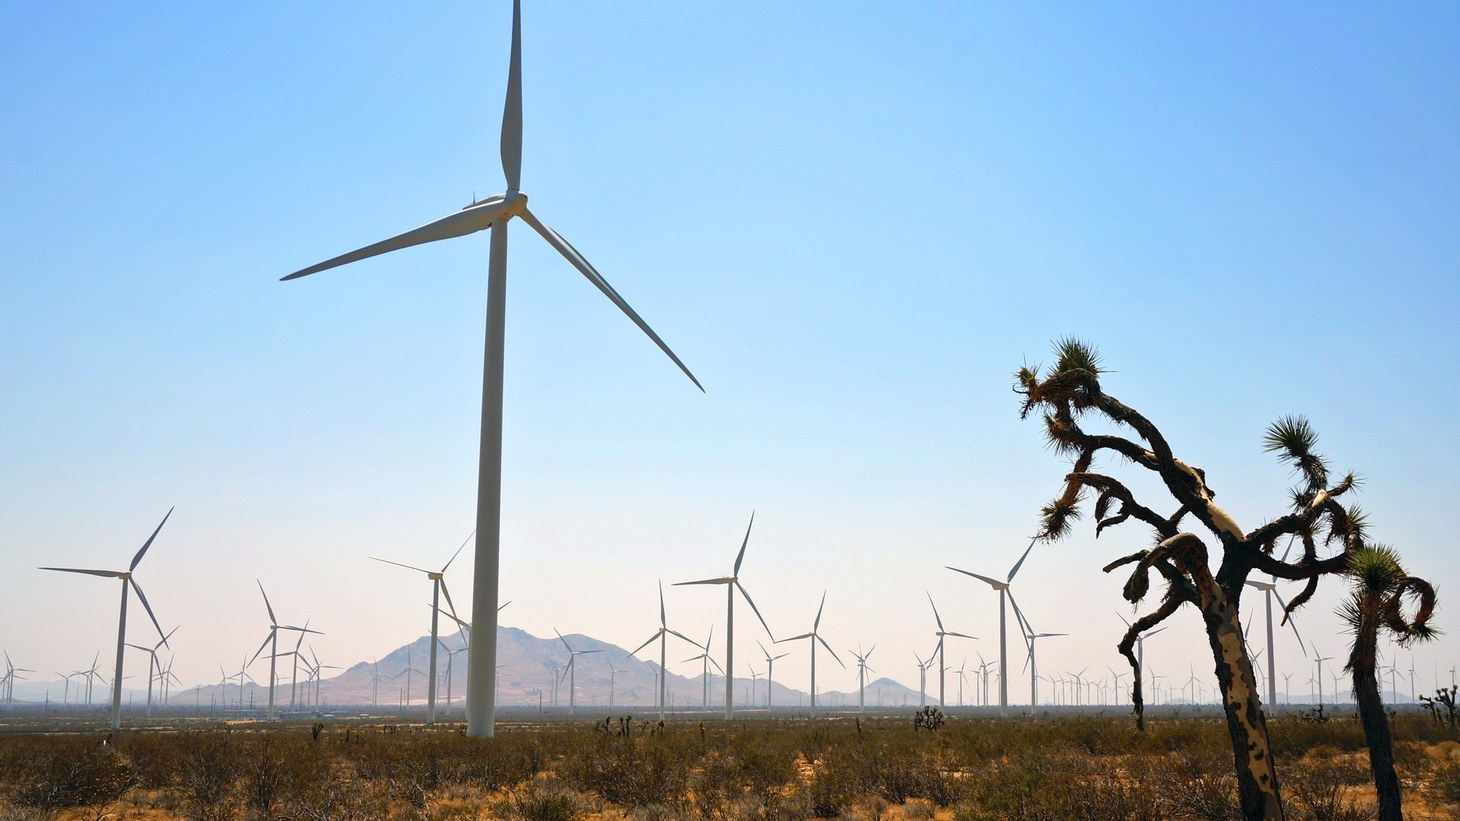 America's most powerful wind farm -- 1.5 gigawatts in size, enough to generate electricity for a city of millions -- is on the edge of the Mojave at the foot of the Tehachapi Pass, site of one of the earliest and still largest collections of windmills in the world. Altogether, there are more than 5,000 turbines in the area, and the newest and largest are nearly 500 feet to the tip of the blade.